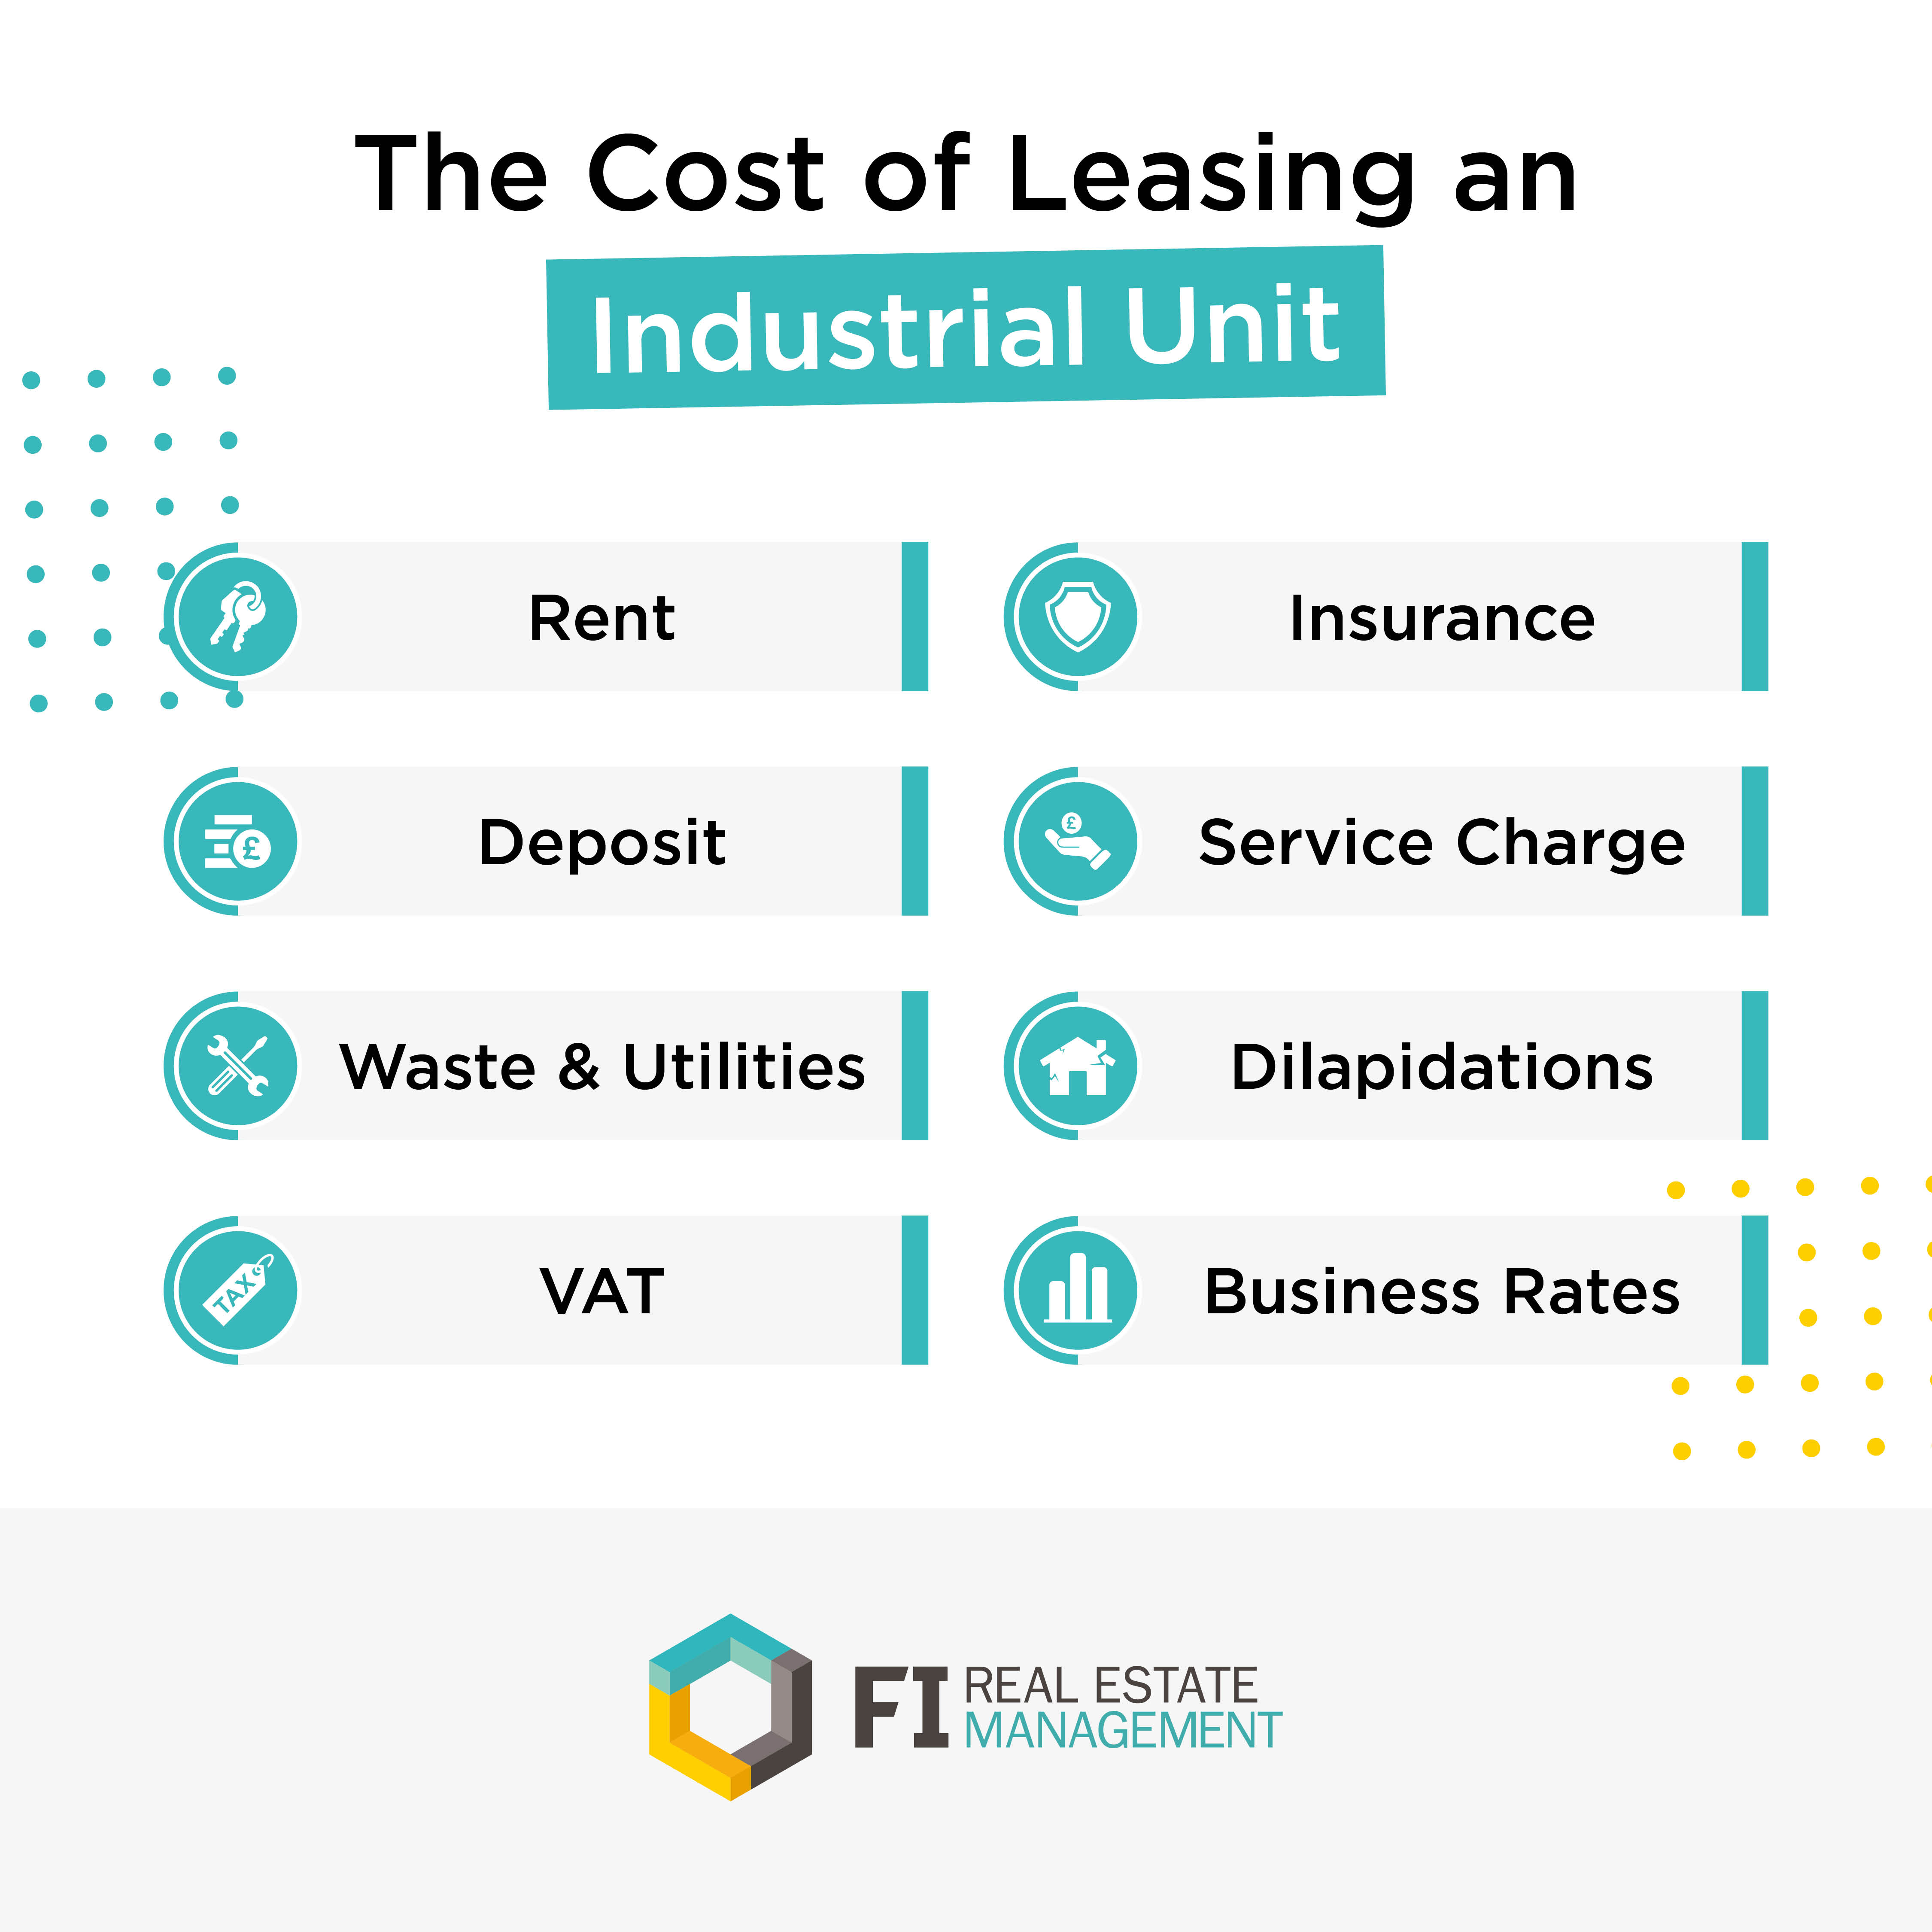 The Cost of Leasing an Industrial Unit